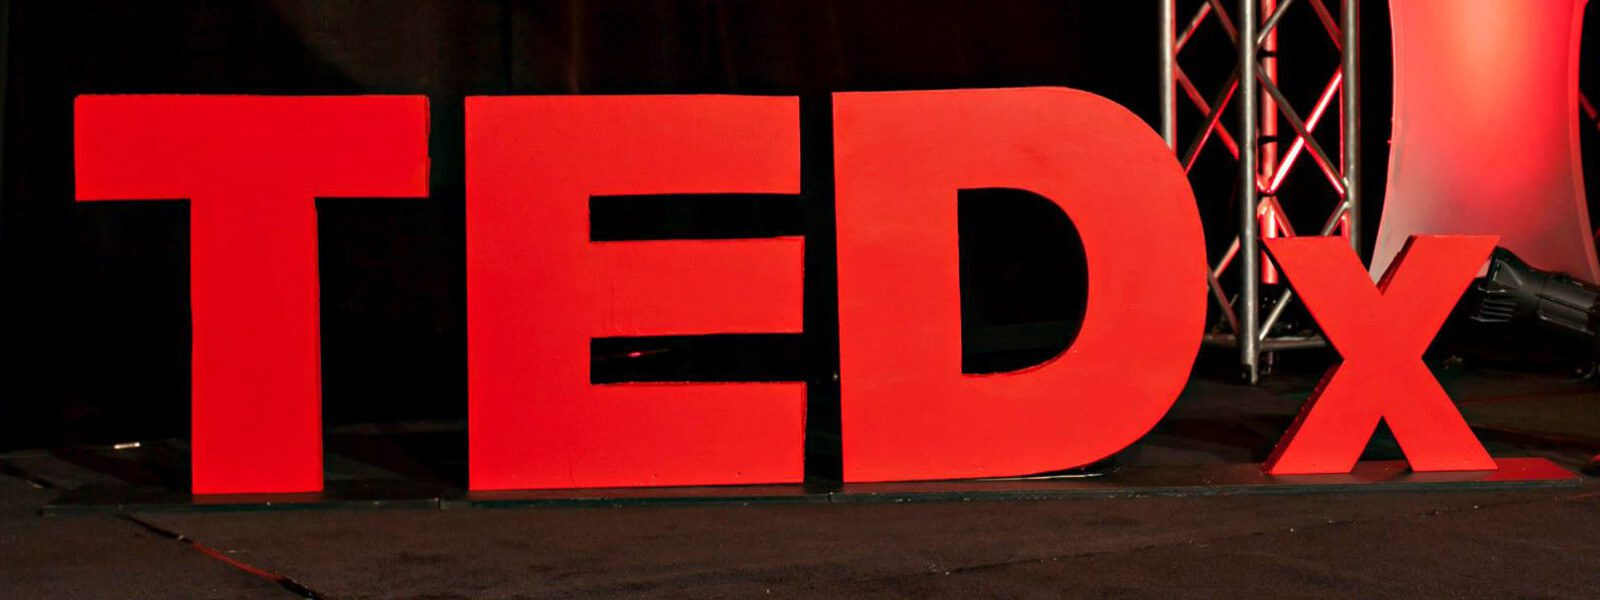 TEDx sign.